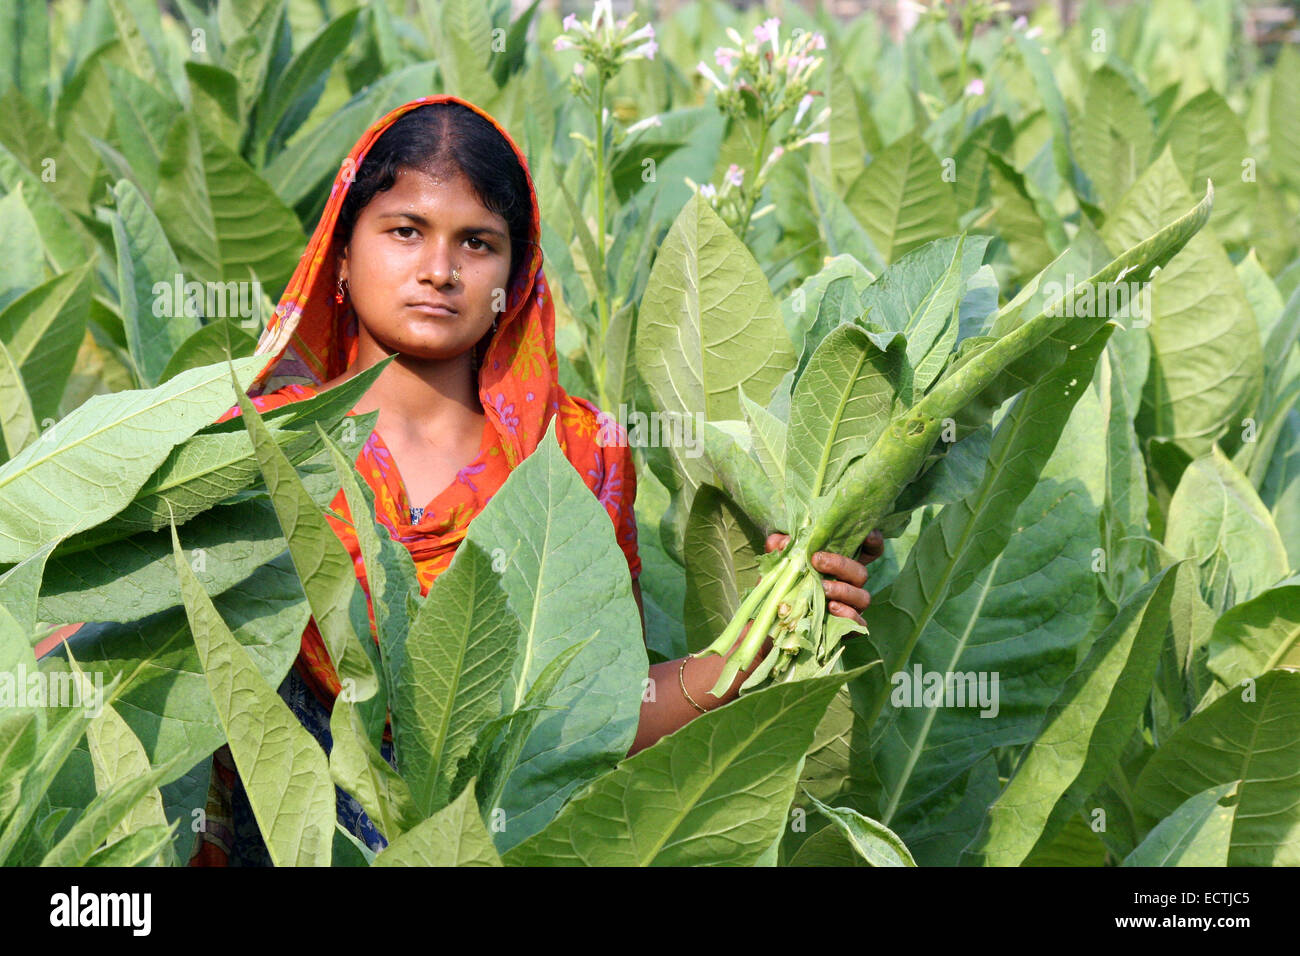 2009.Woman Tobacco farmer standing in field of tobacco plants holding a bundle of tobacco leaves in manikganj out - Stock Image